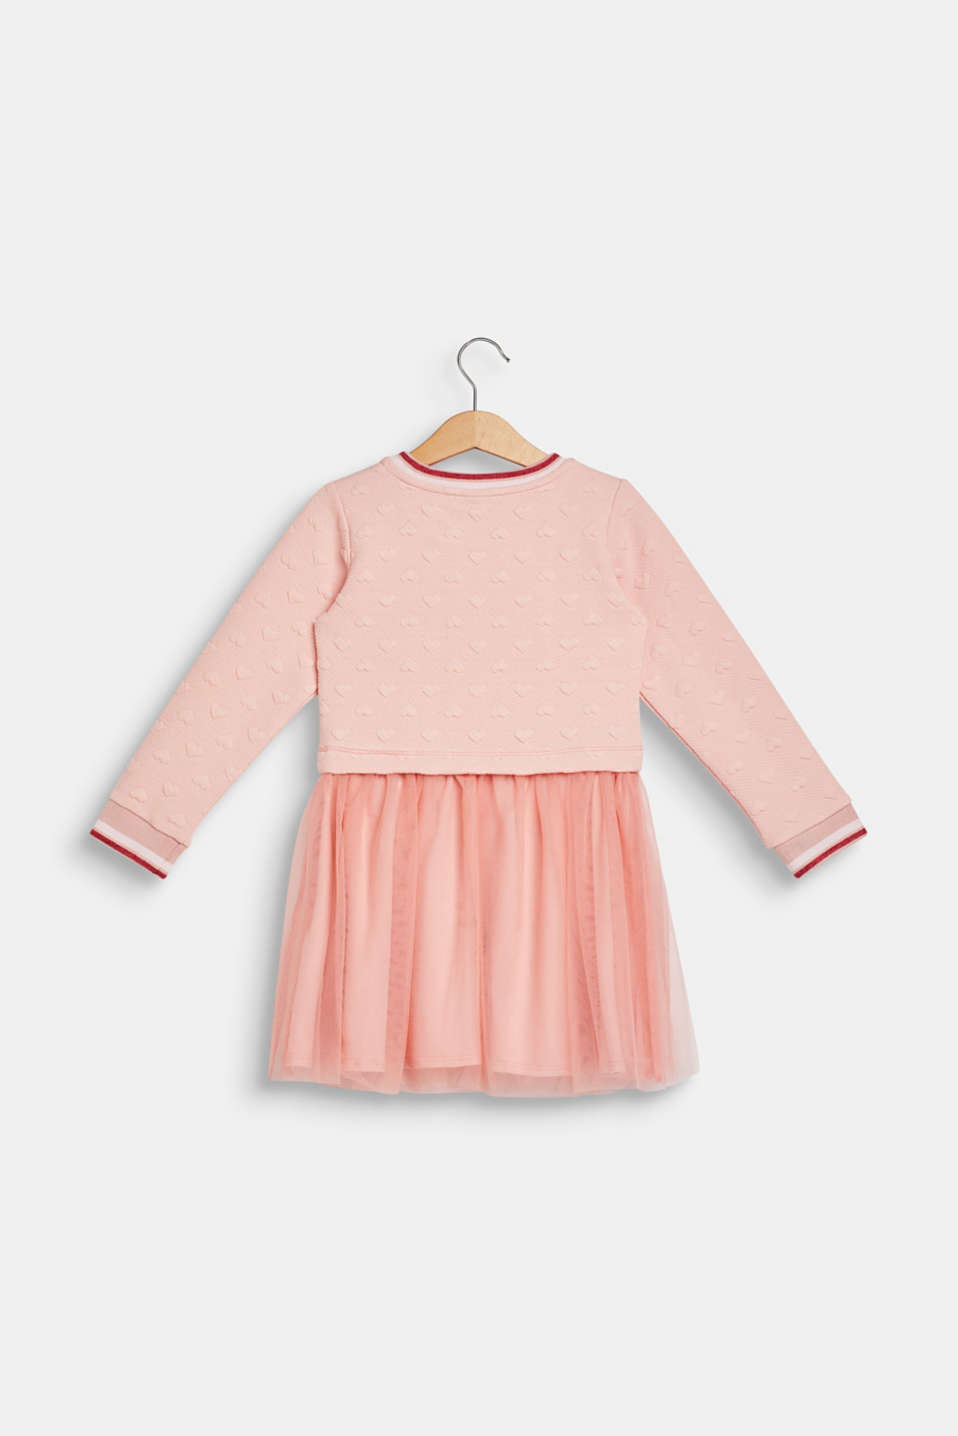 Sweatshirt fabric dress with a mesh skirt, LIGHT BLUSH, detail image number 1